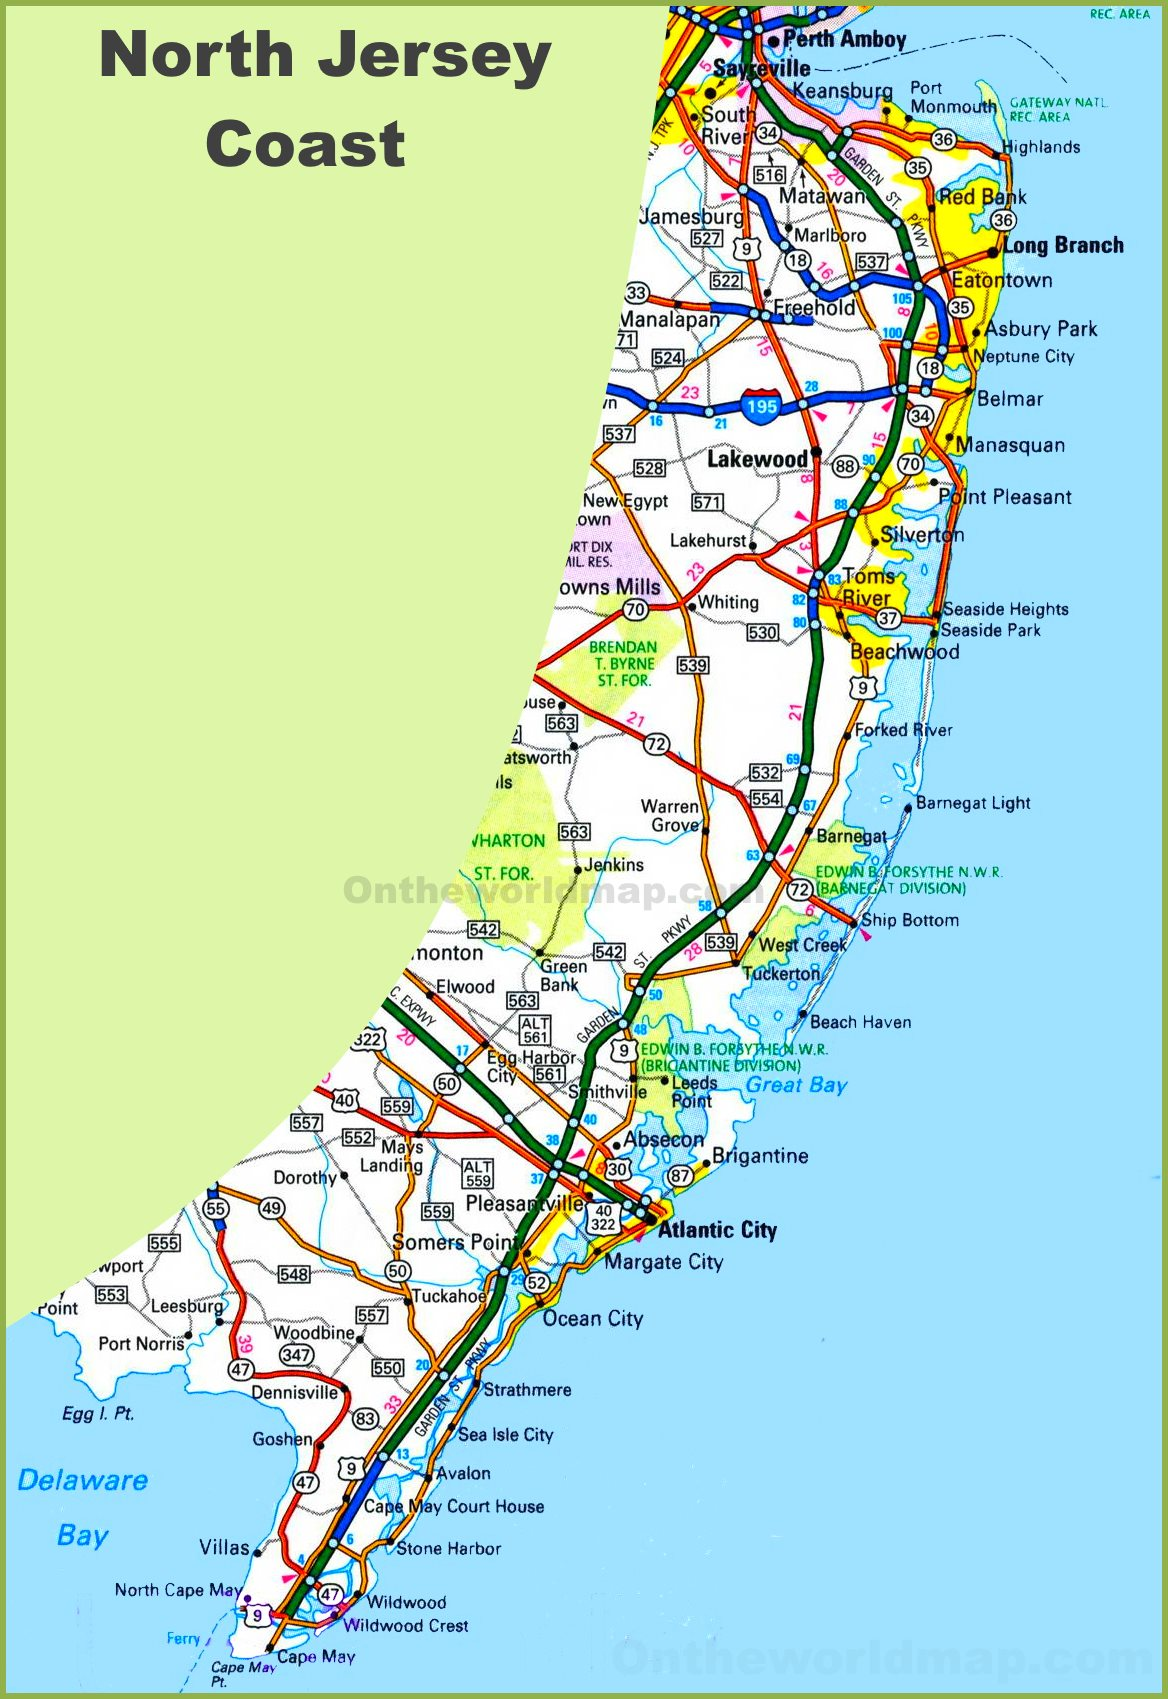 New Jersey Beaches Map New Jersey coast map